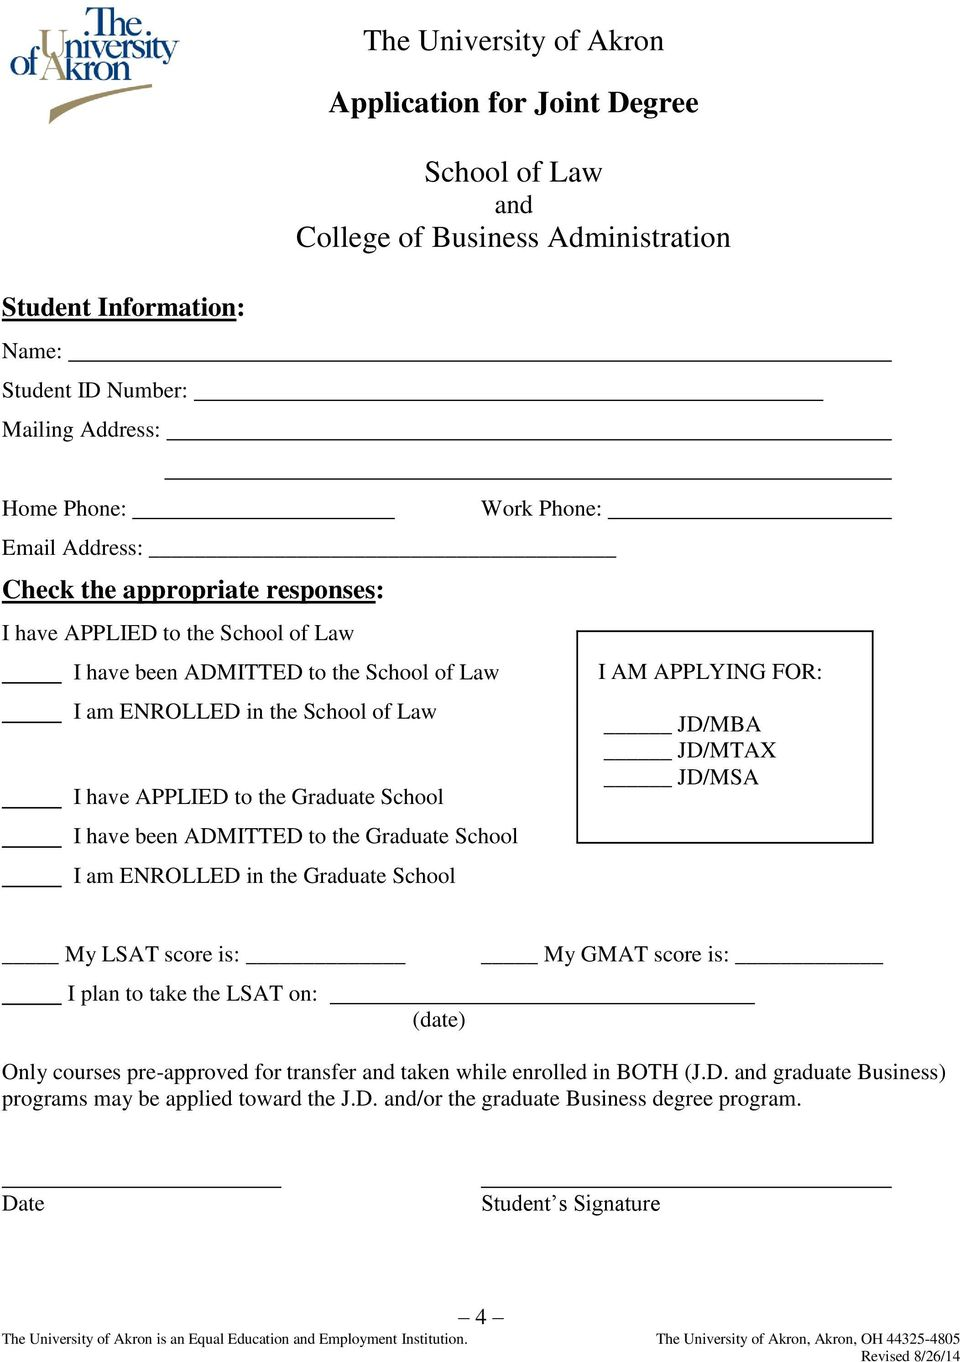 School I have been ADMITTED to the Graduate School I am ENROLLED in the Graduate School I AM APPLYING FOR: JD/MBA JD/MTAX JD/MSA My LSAT score is: I plan to take the LSAT on: (date) My GMAT score